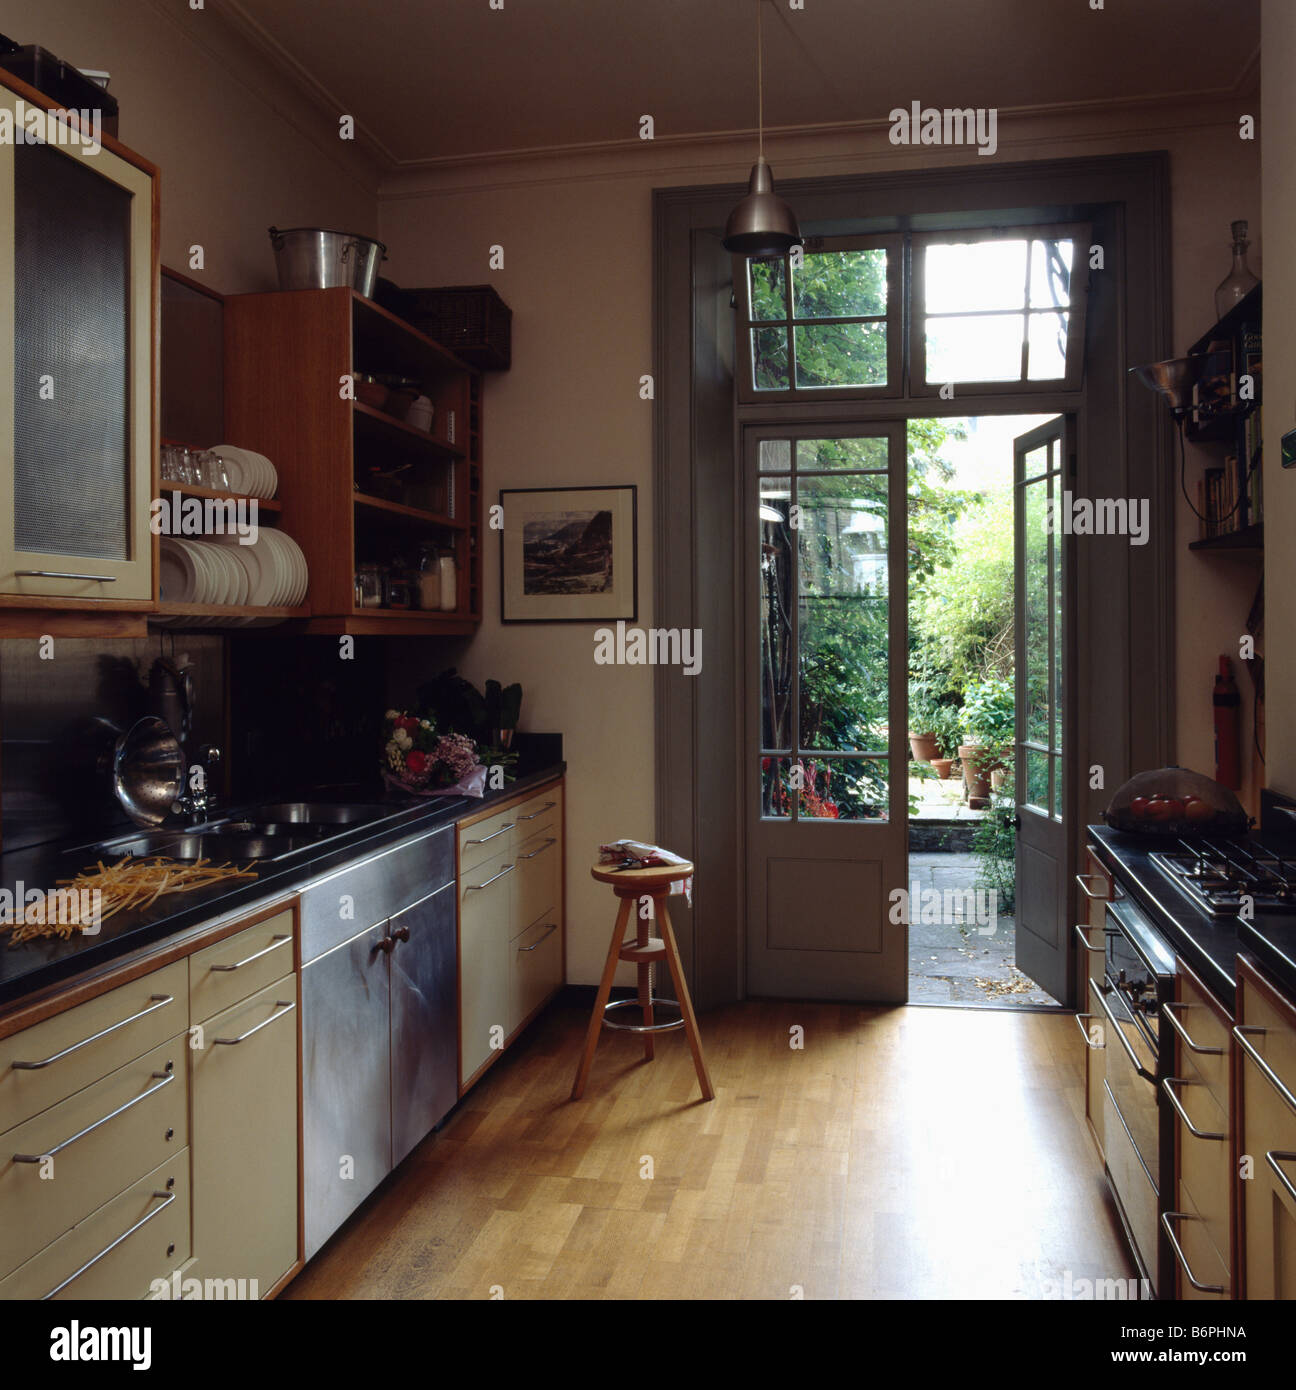 Exceptionnel Wooden Flooring In Modern Galley Kitchen With French Doors Open To The  Garden